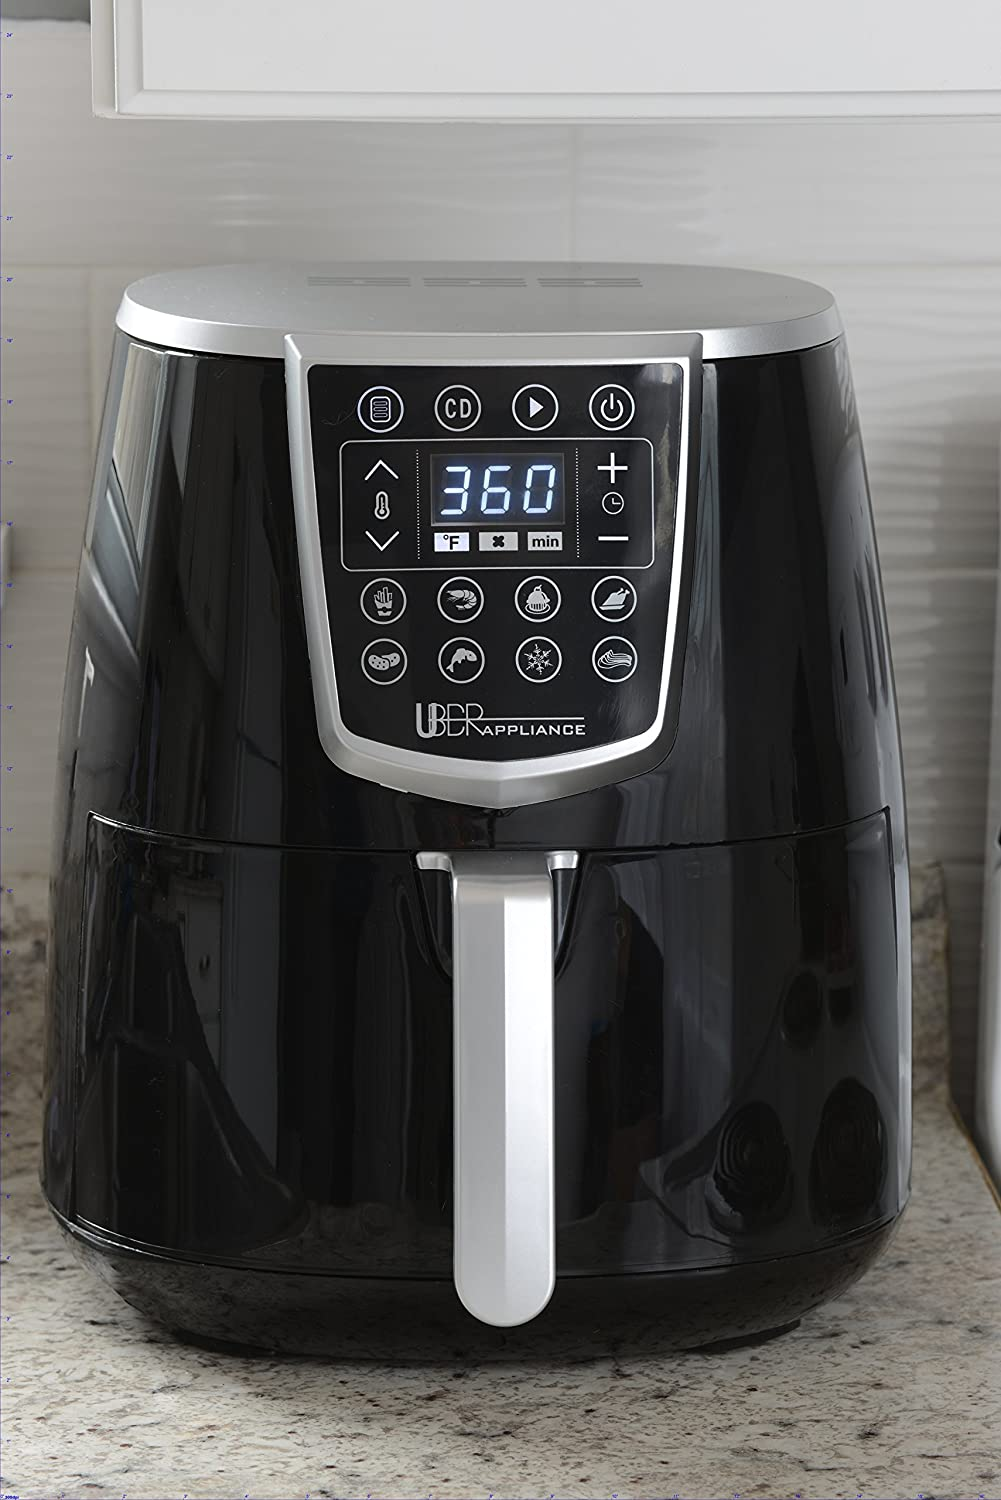 Uber Appliance Air Fryer XL Big Hot 4.2 Quart